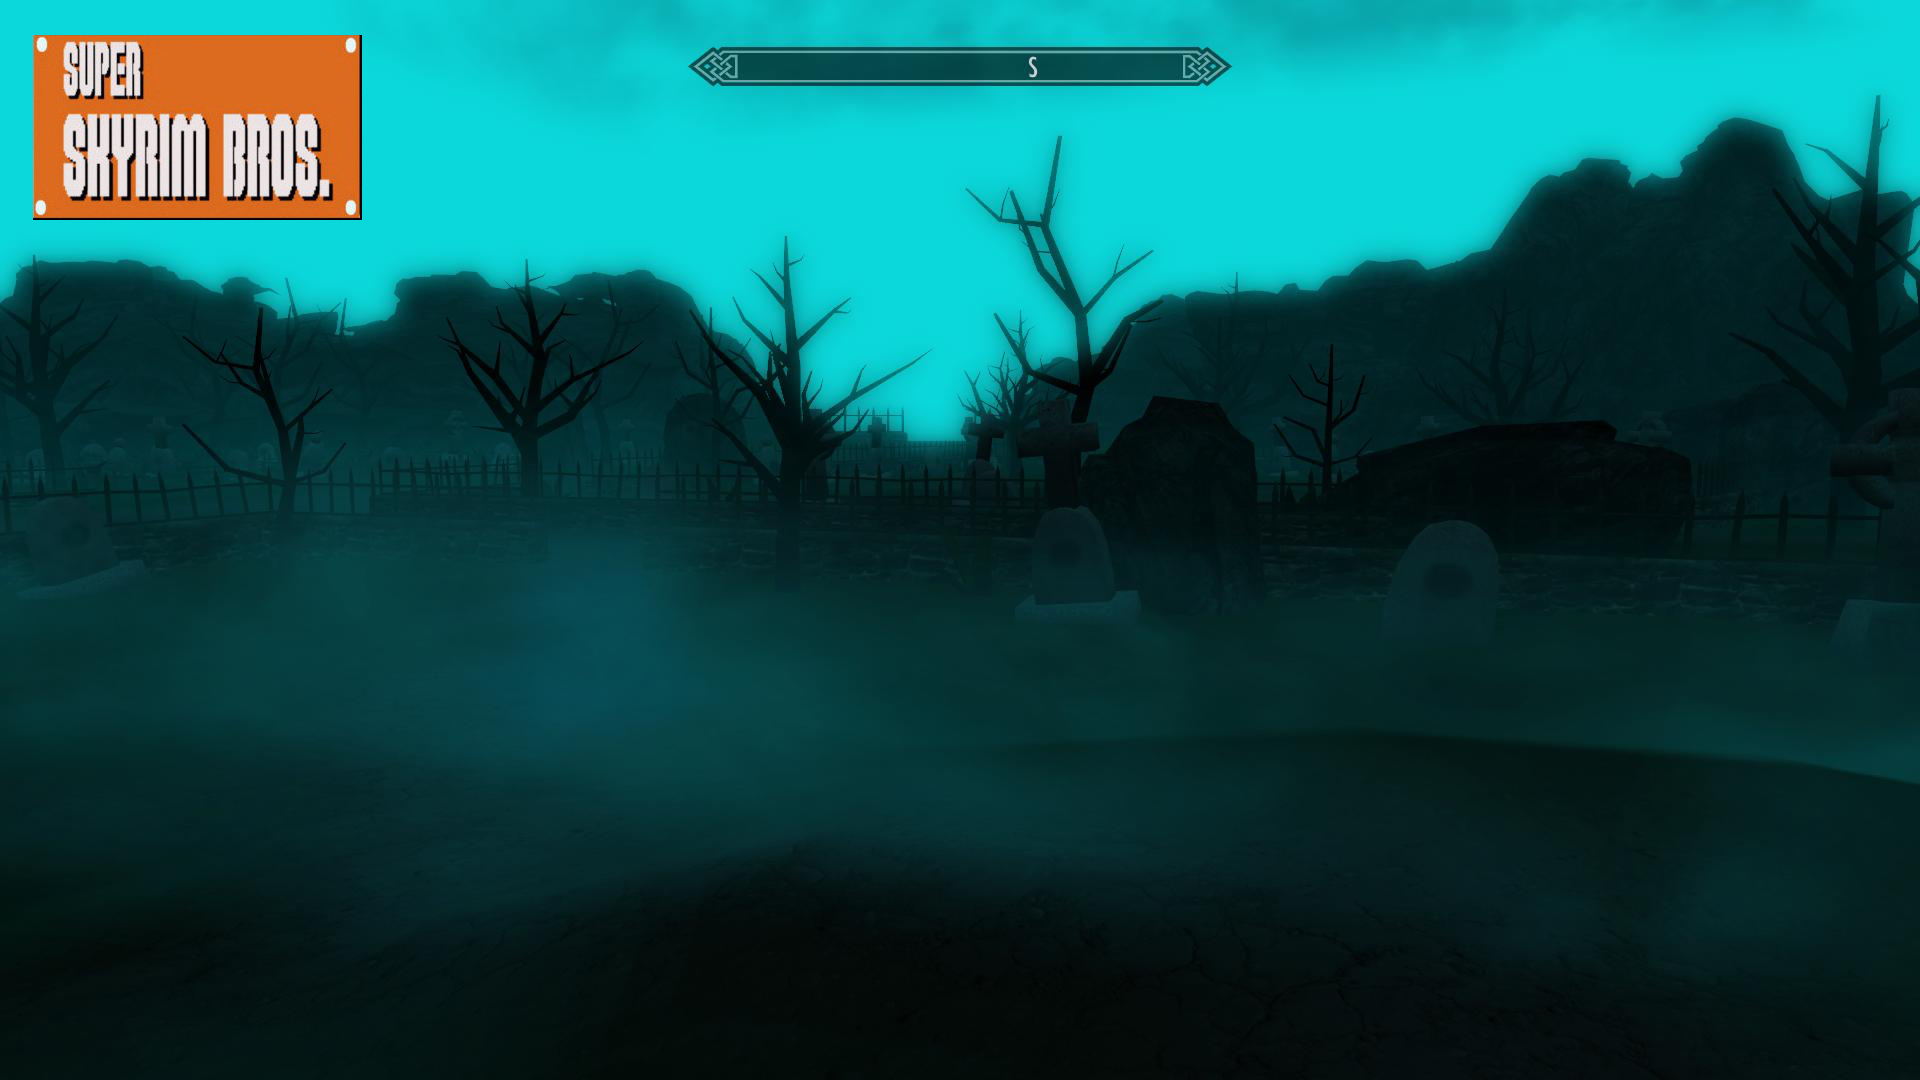 SUPER SKYRIM BROS_Haunted House WIP